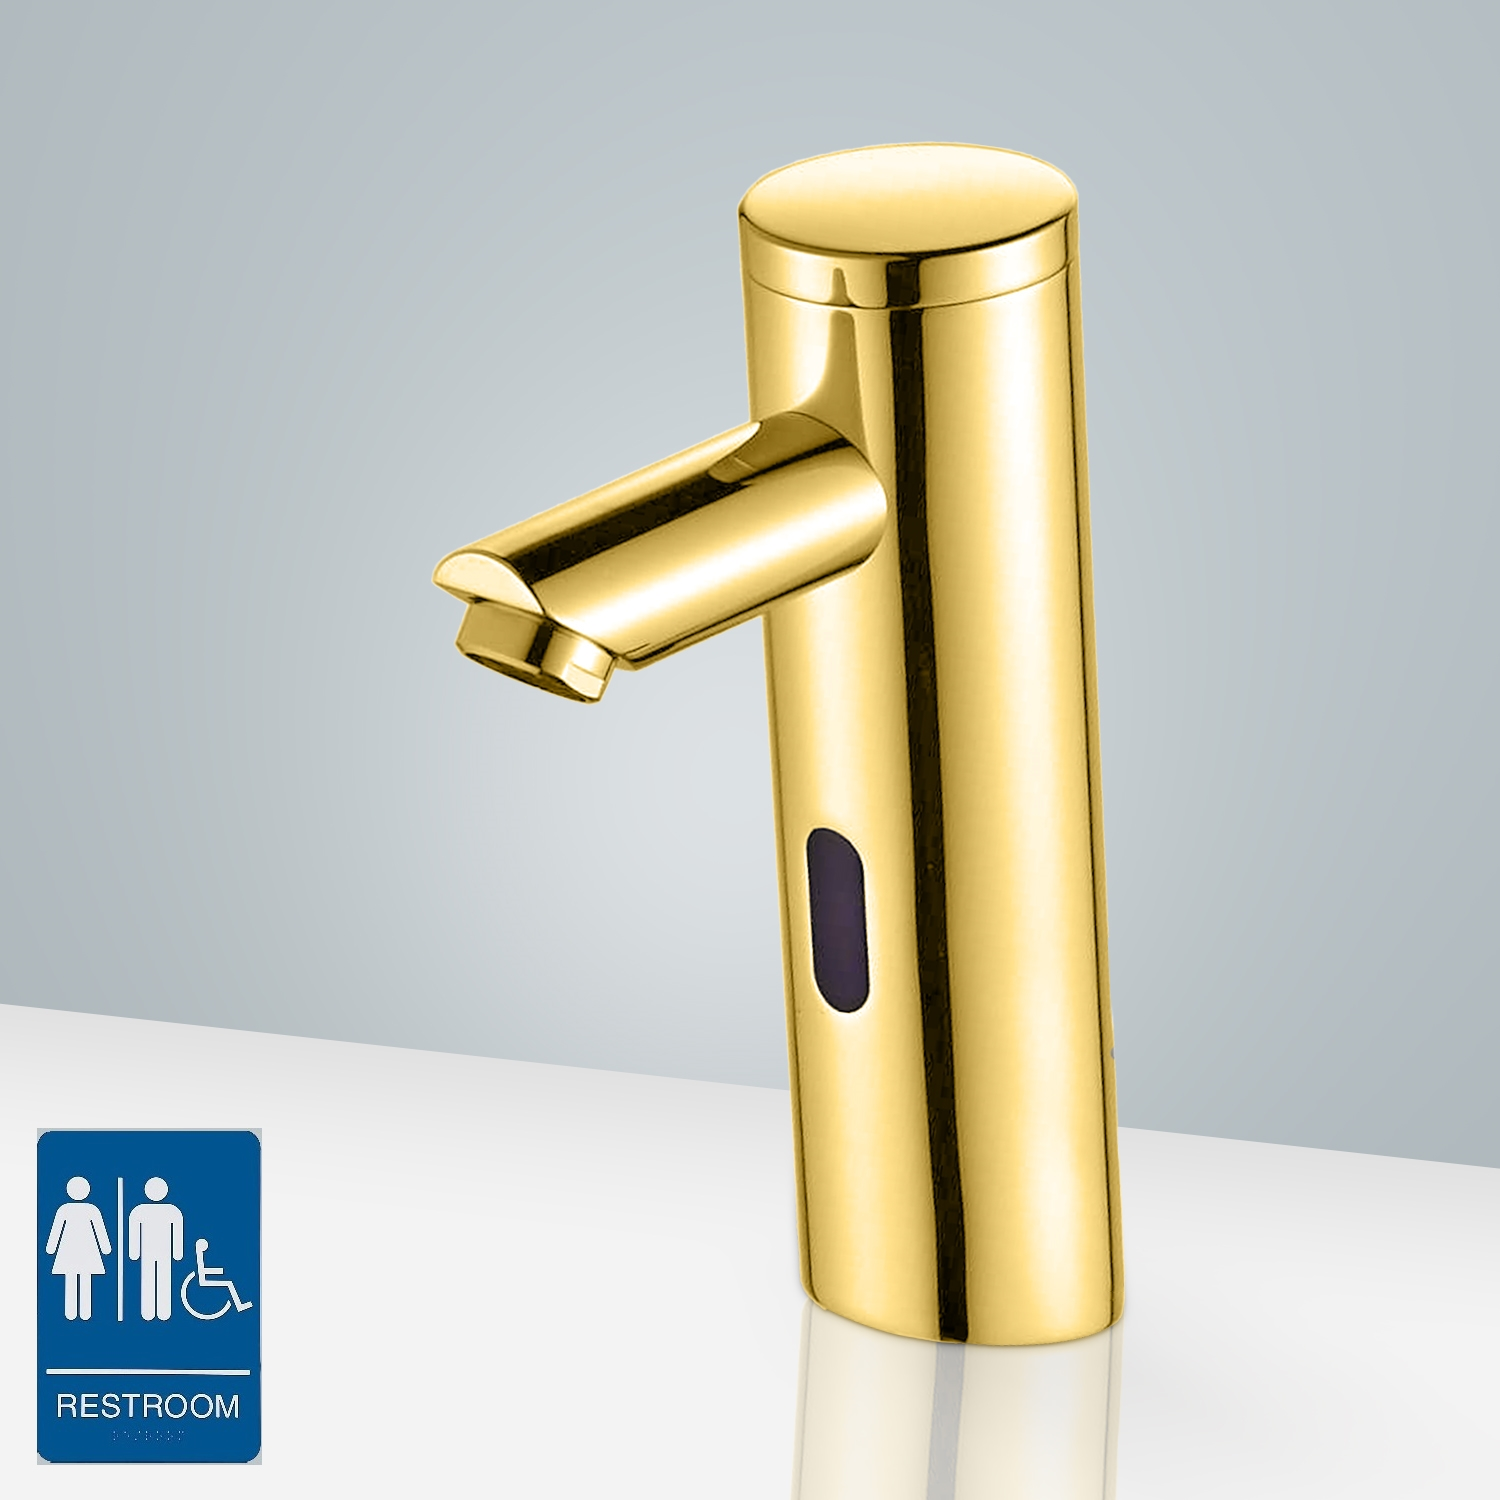 Gold Plated Bathroom Faucet Thermostatic Sensor Tap Solid Brass - Gold plated bathroom faucets